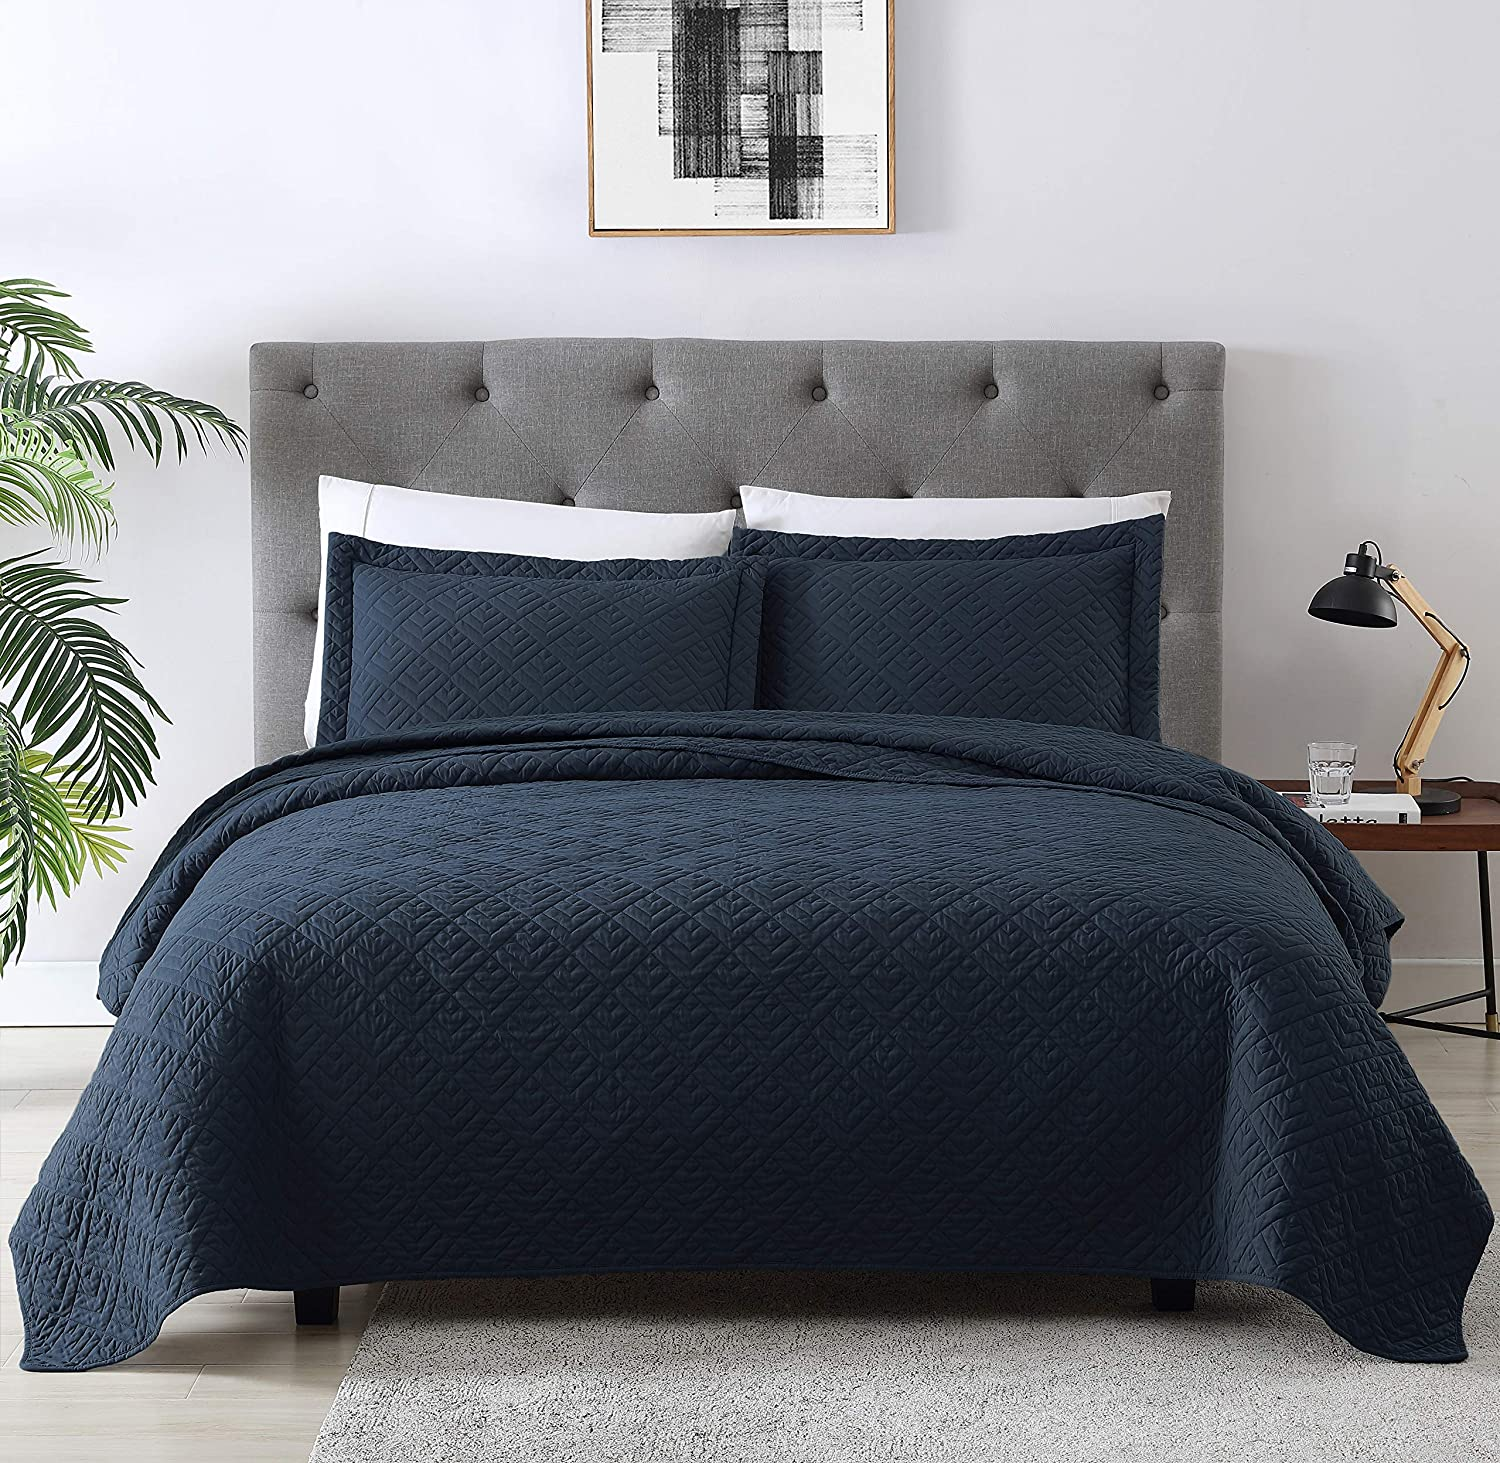 EXQ Home Quilt Set Full Queen Size Navy 3 Piece,Lightweight Microfiber Coverlet Modern Style Squares Pattern Bedspread Set